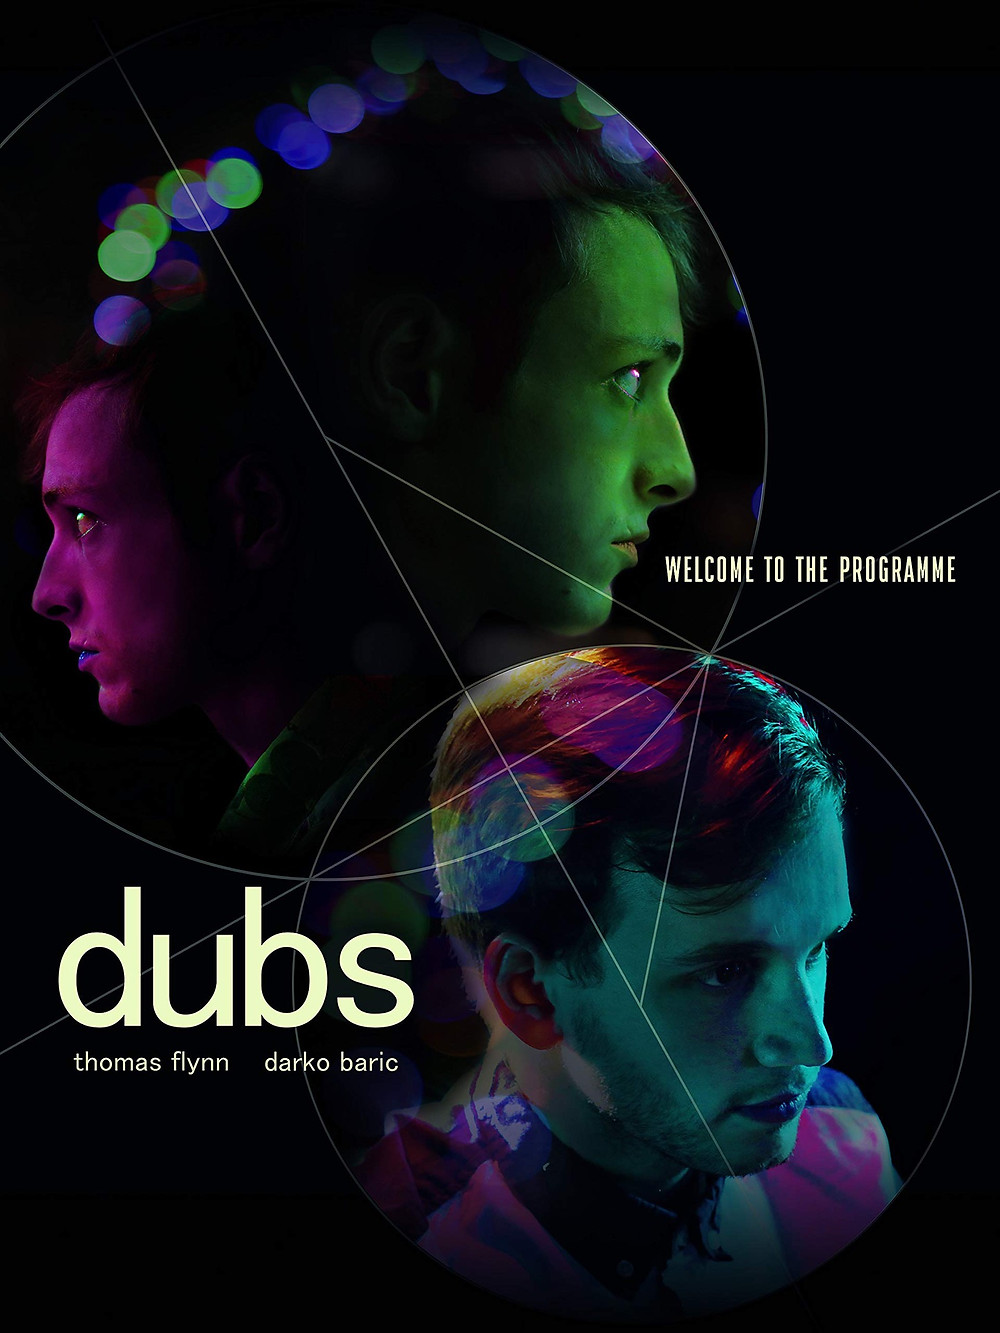 Short Film Review for Dubs